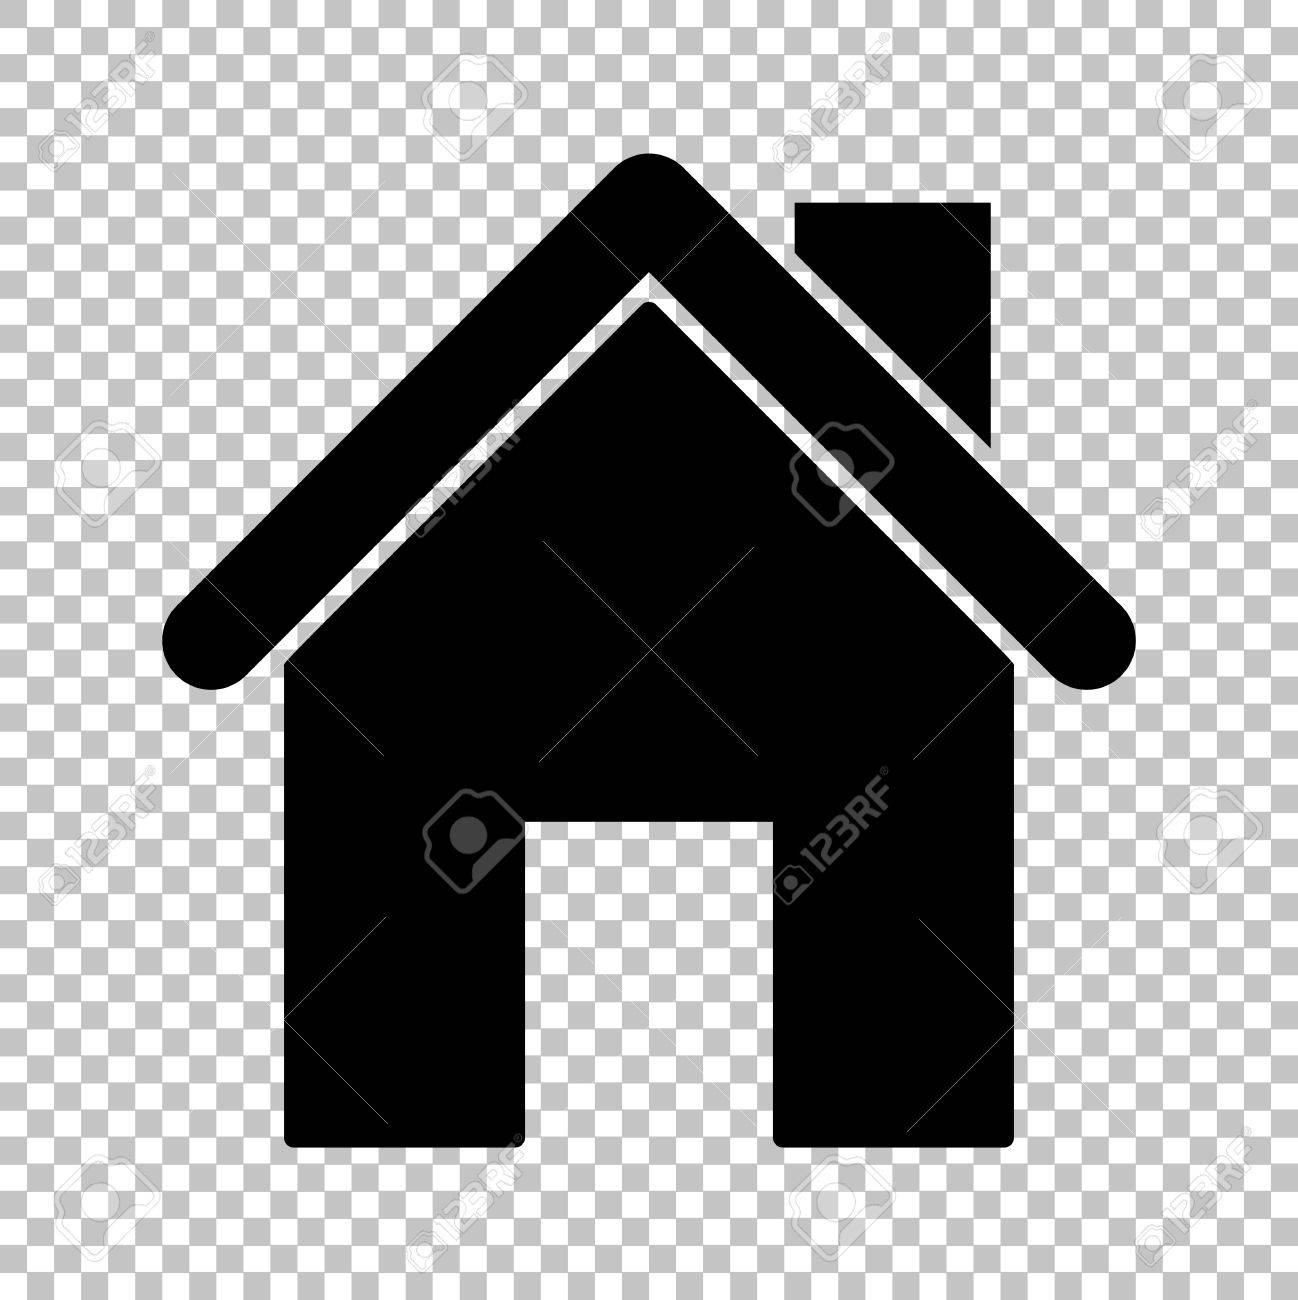 Home Silhouette Flat Style Icon On Transparent Background Royalty Free Cliparts Vectors And Stock Illustration Image 52172864